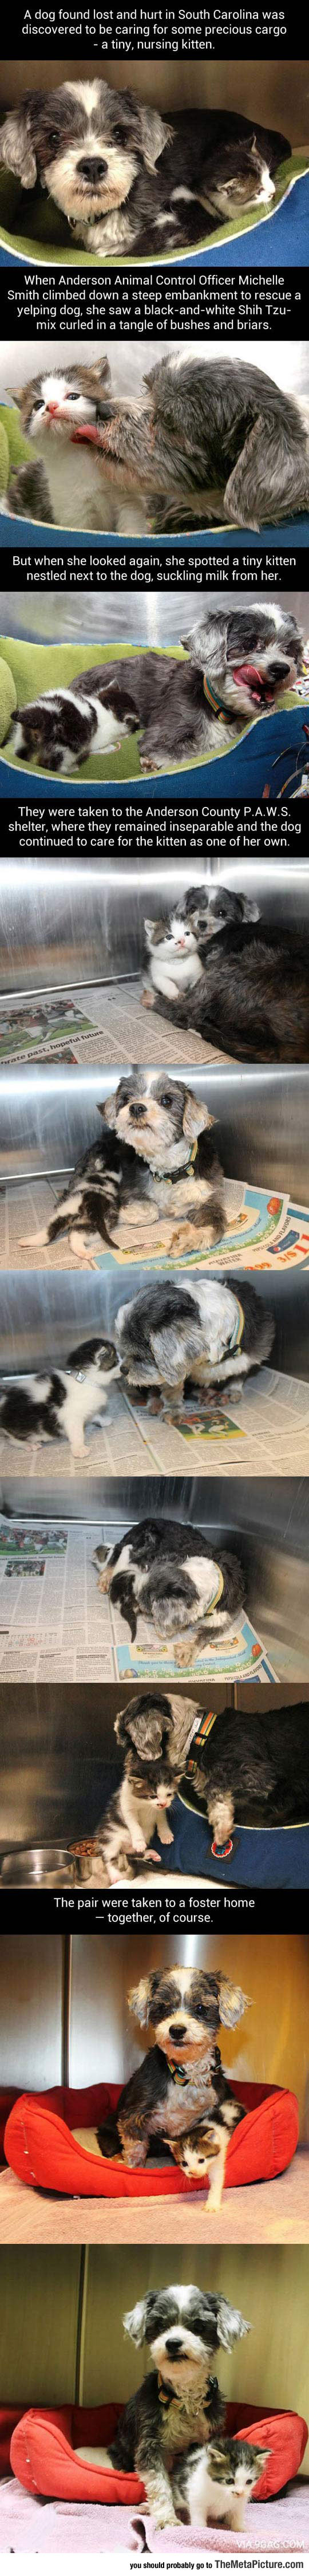 Lost Dog Finds Kitten And Saves Her